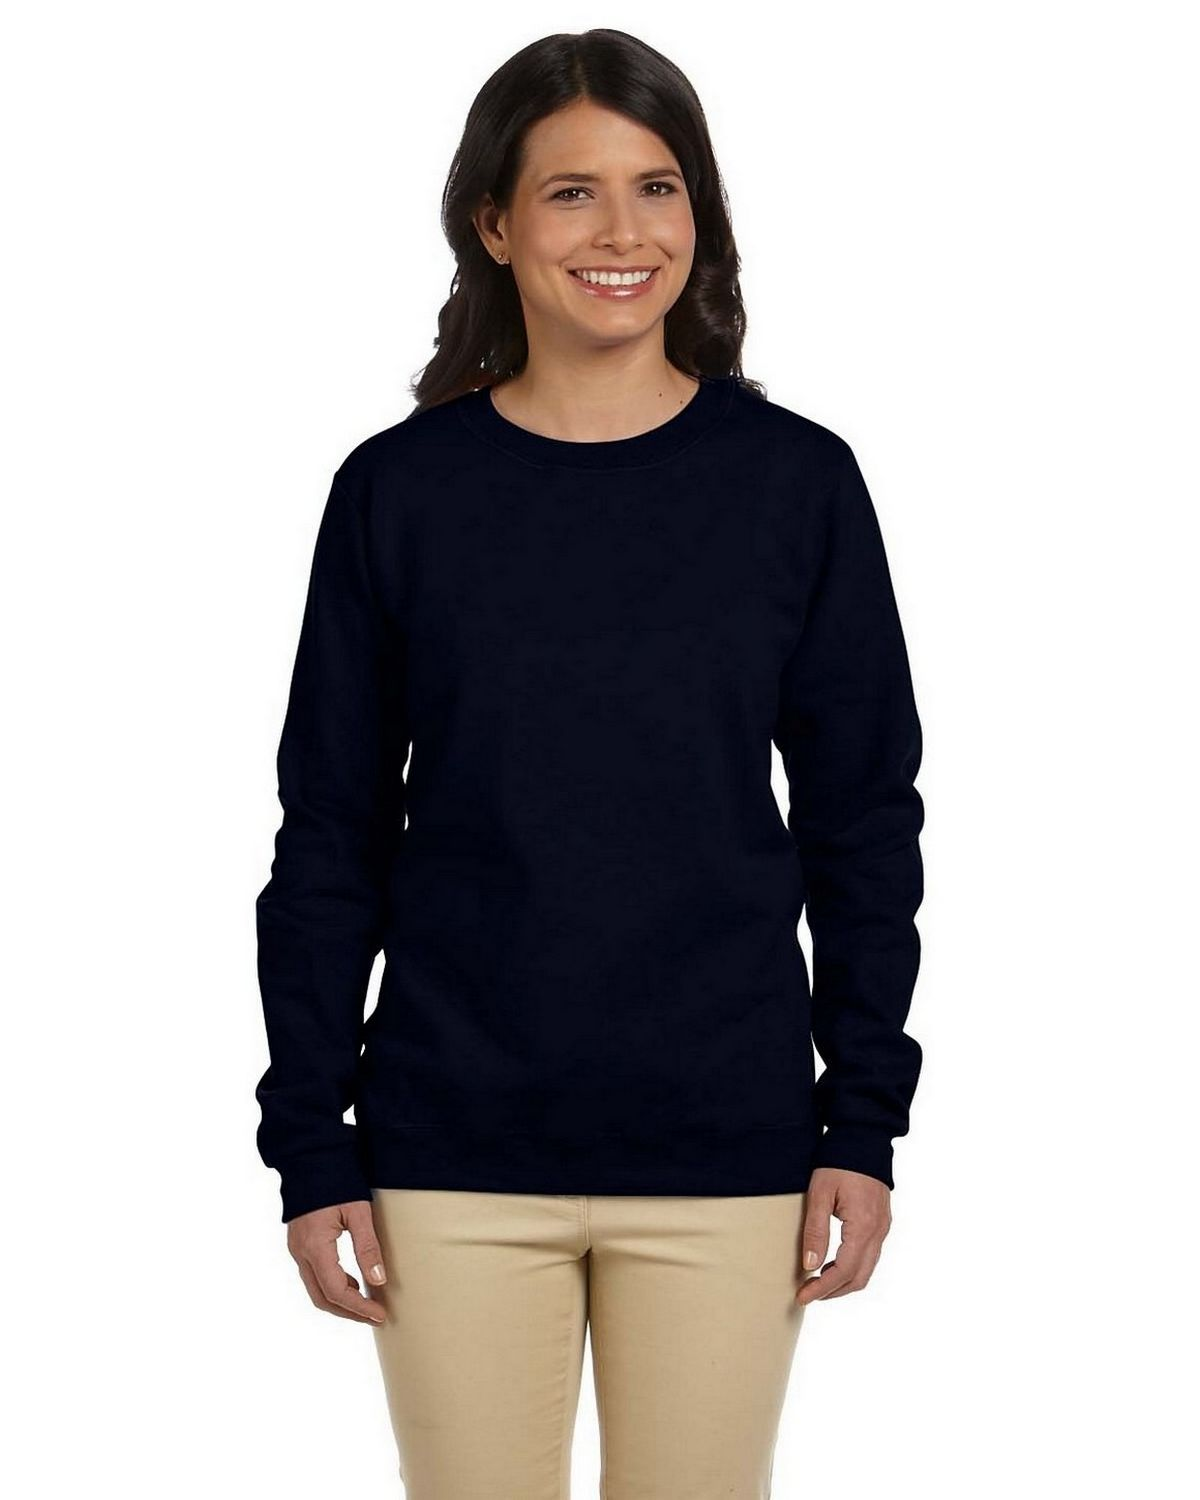 Gildan G180FL Ladies Heavy Blend Fleece Crew - Black - M G180FL